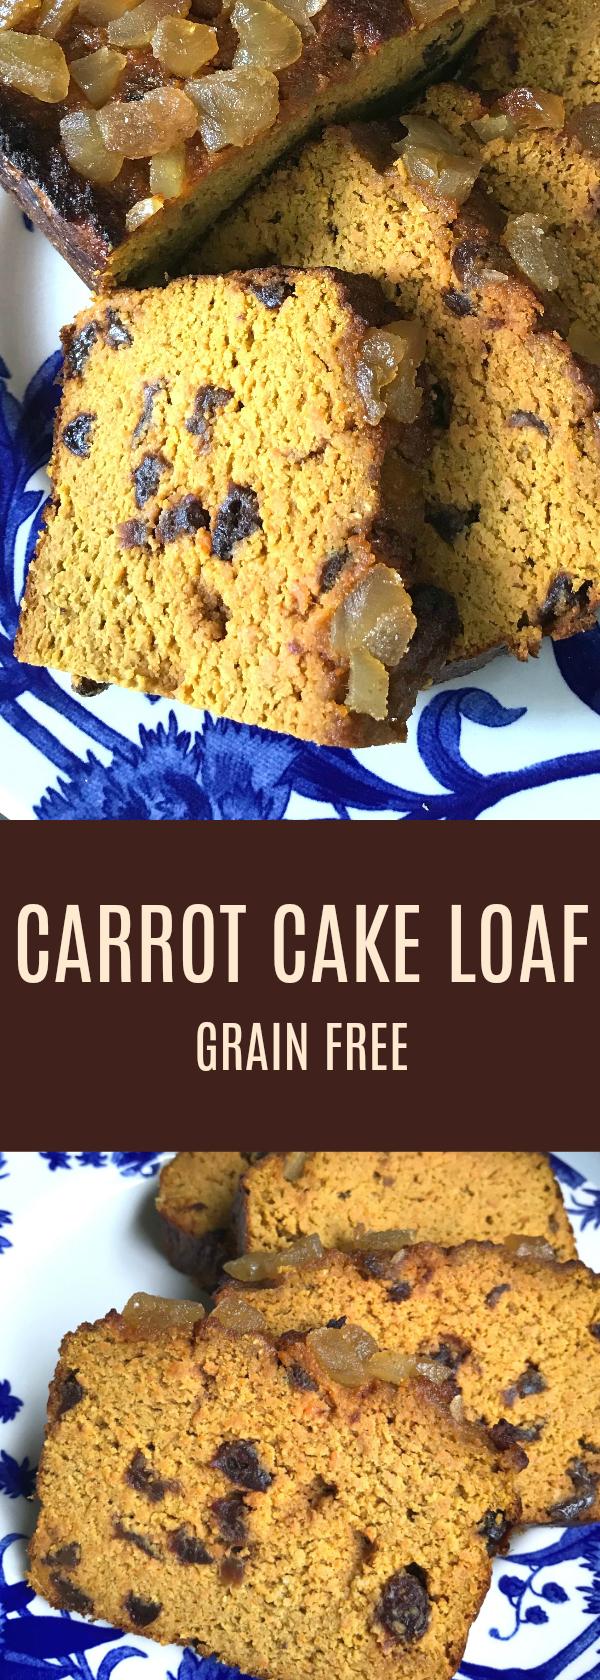 Grain Free Carrot Cake Loaf - Grain Free with Raisins, Maple Syrup and Crystalized Ginger! Paleo, Gluten and Dairy Free